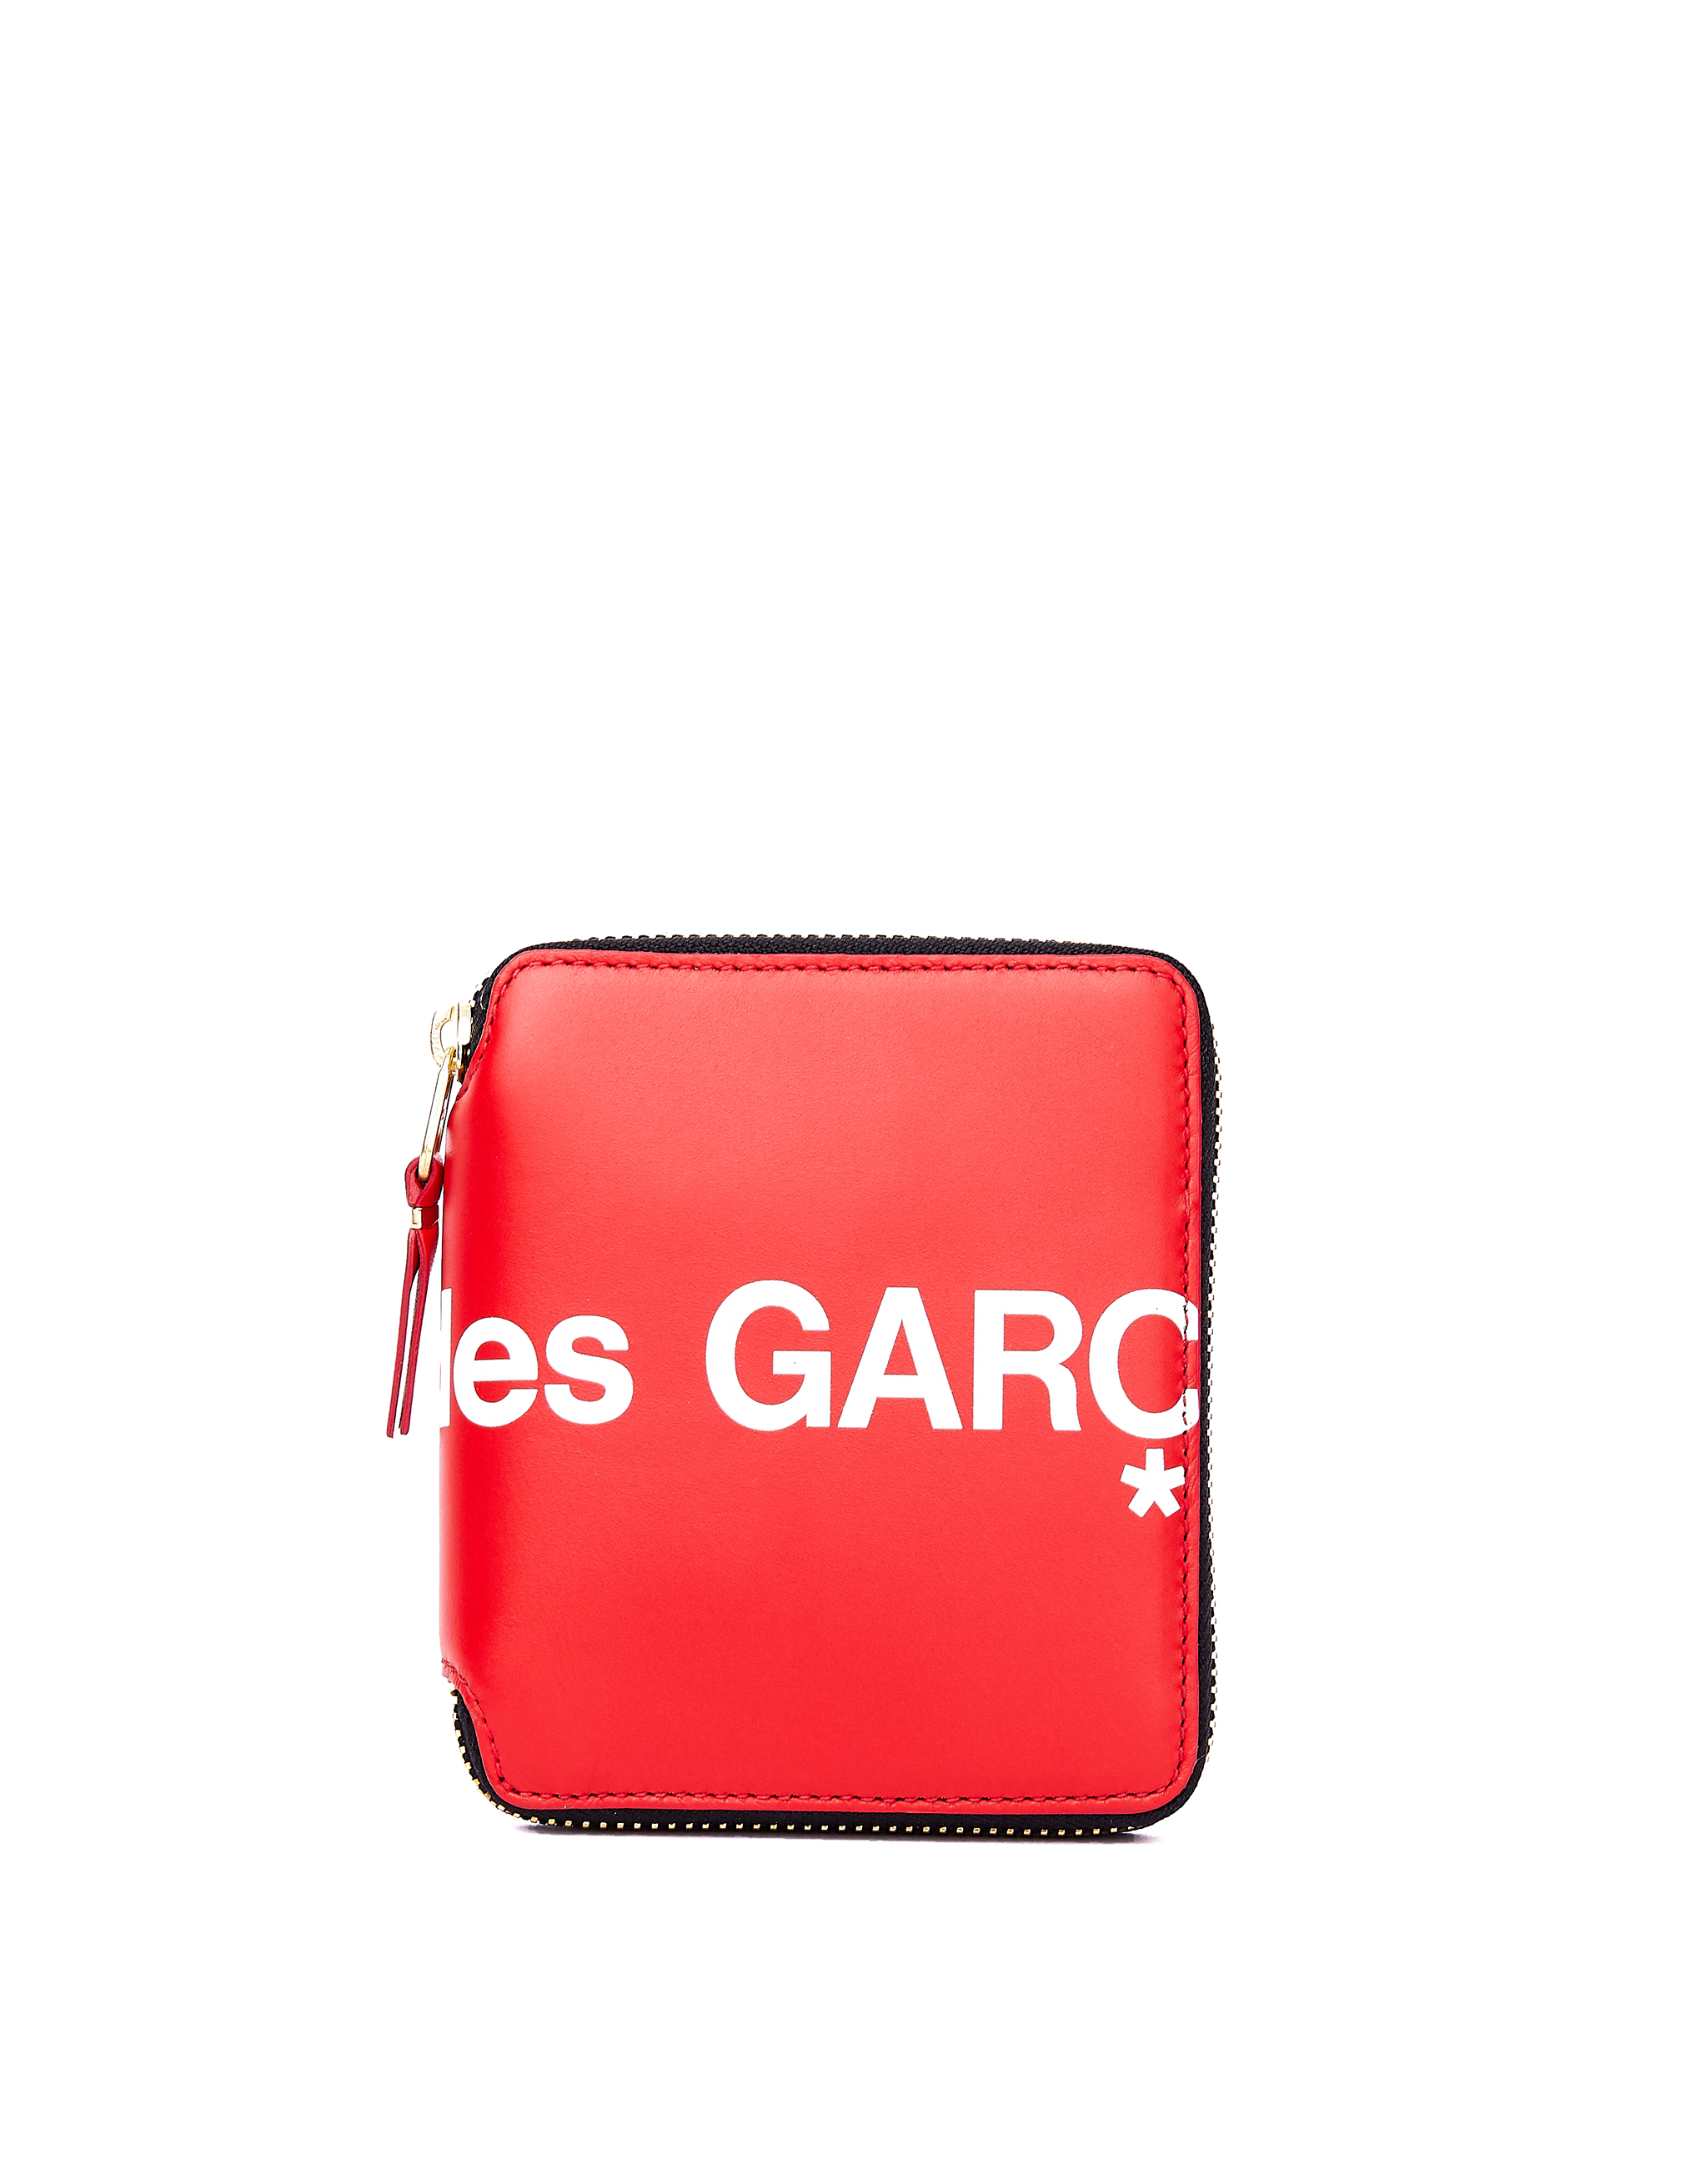 Comme des Garcons Wallets Red Leather Wallet